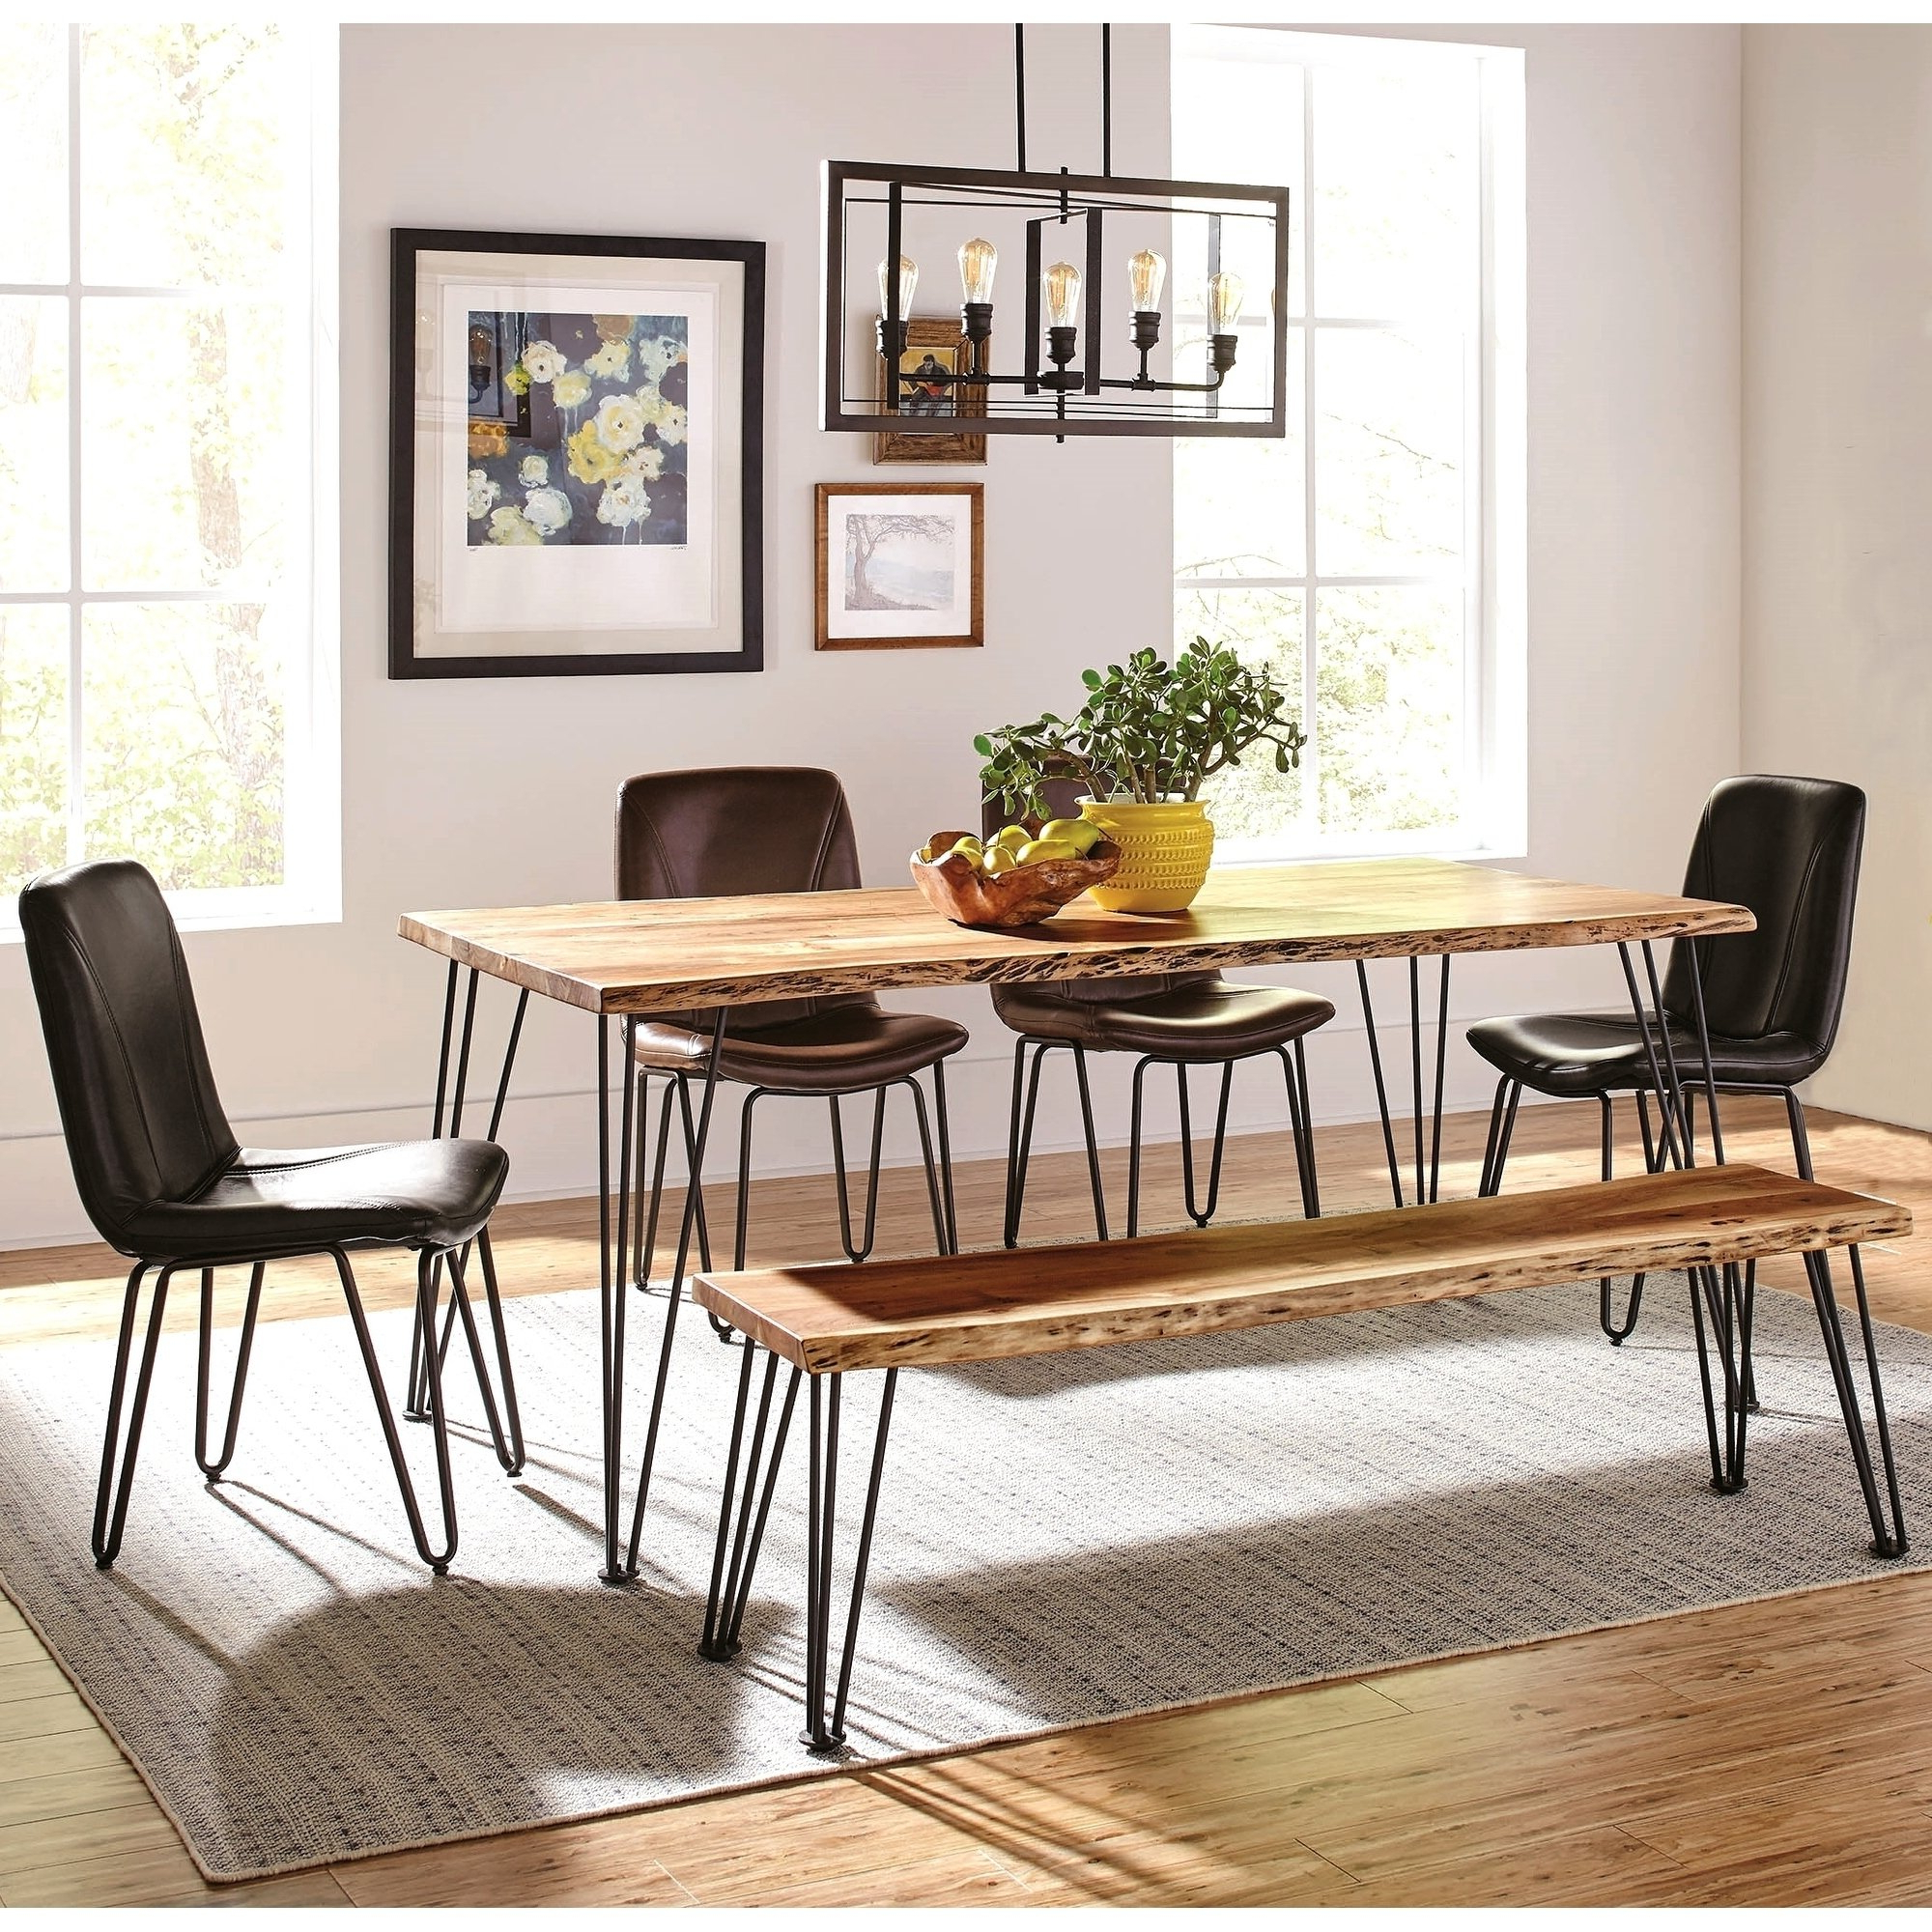 Most Current Rustic Mid Century Modern 6 Seating Dining Tables In White And Natural Wood For Natural Acacia Solid Wood Live Edge With Metal Legs Dining (View 12 of 30)